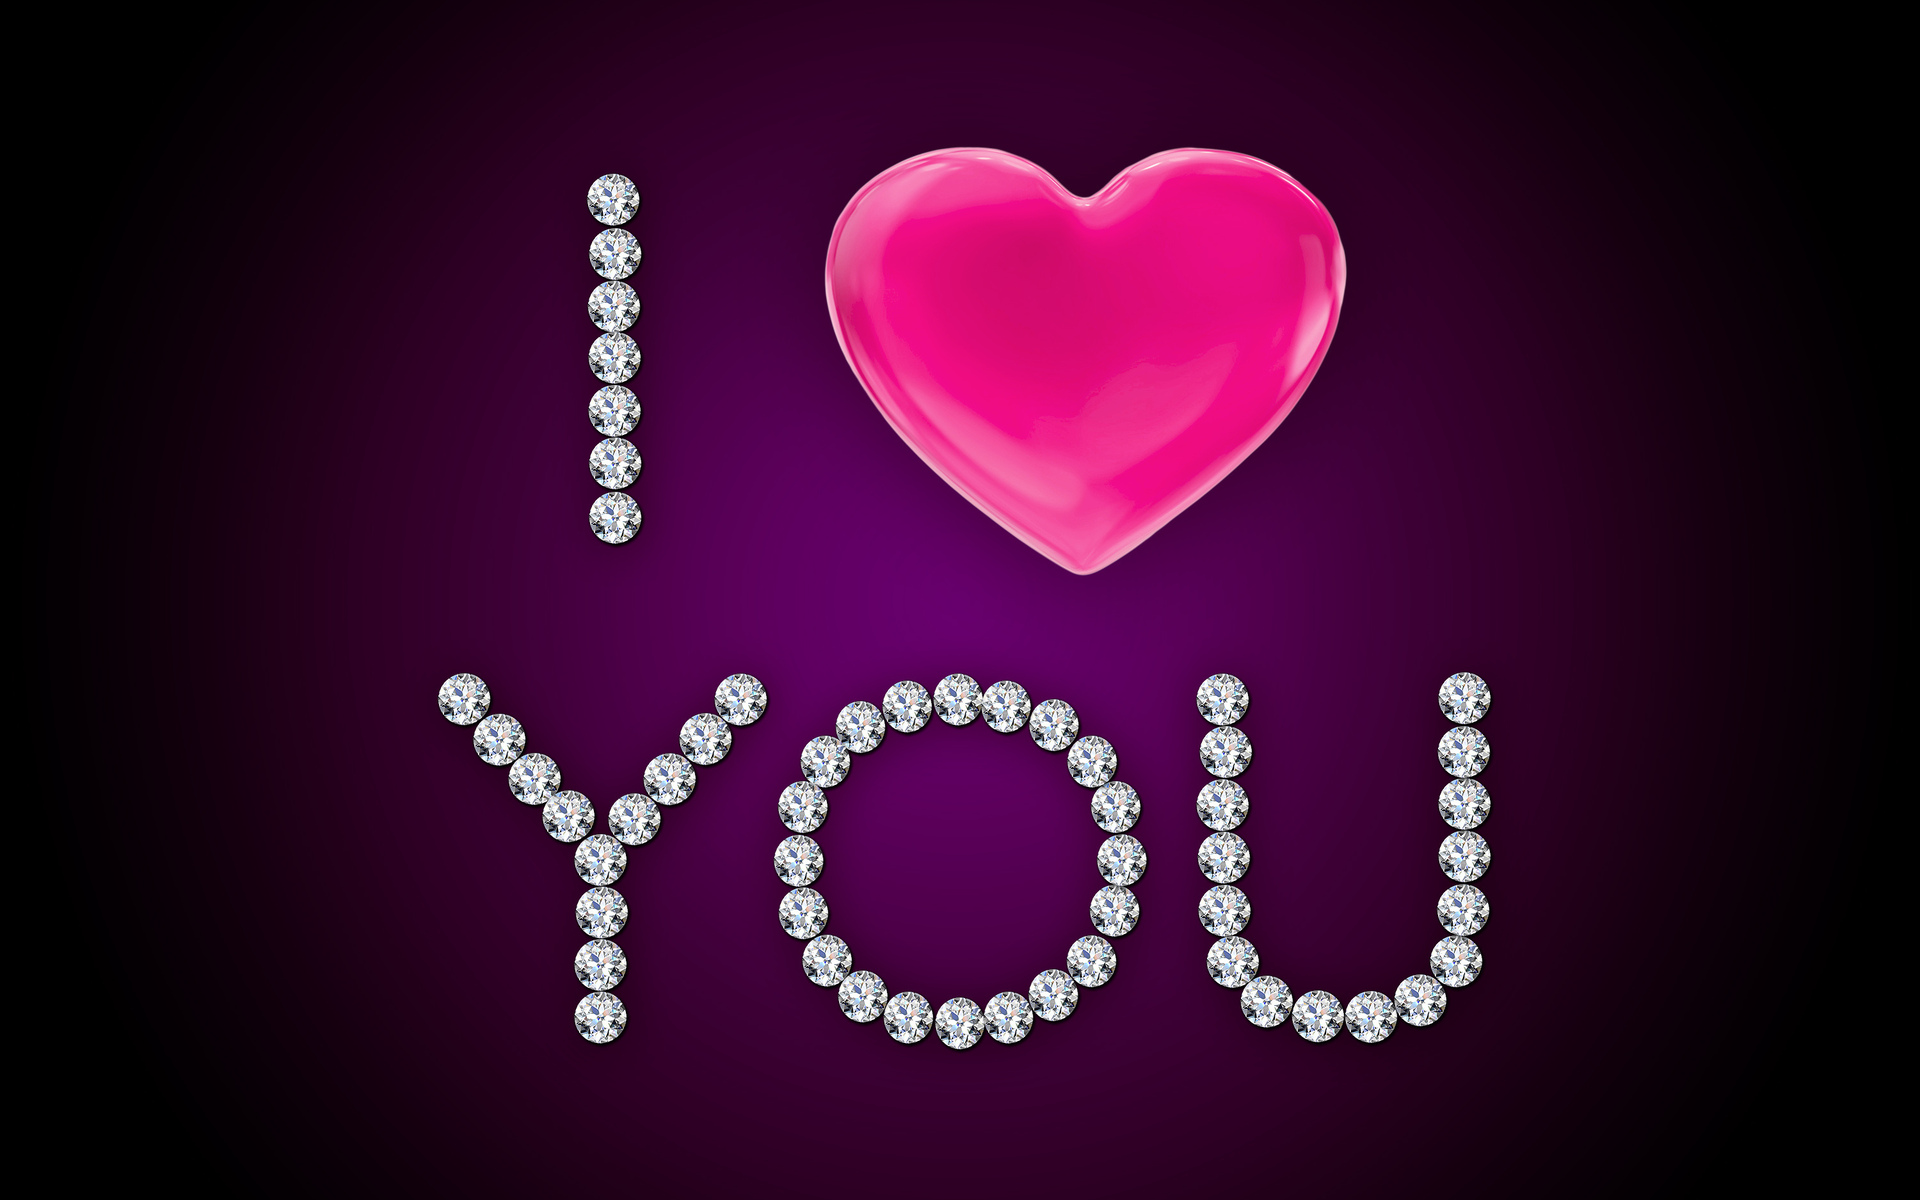 Wallpaper I Love You Heart : I Love You Pink Heart Diamonds wallpapers I Love You Pink Heart Diamonds stock photos